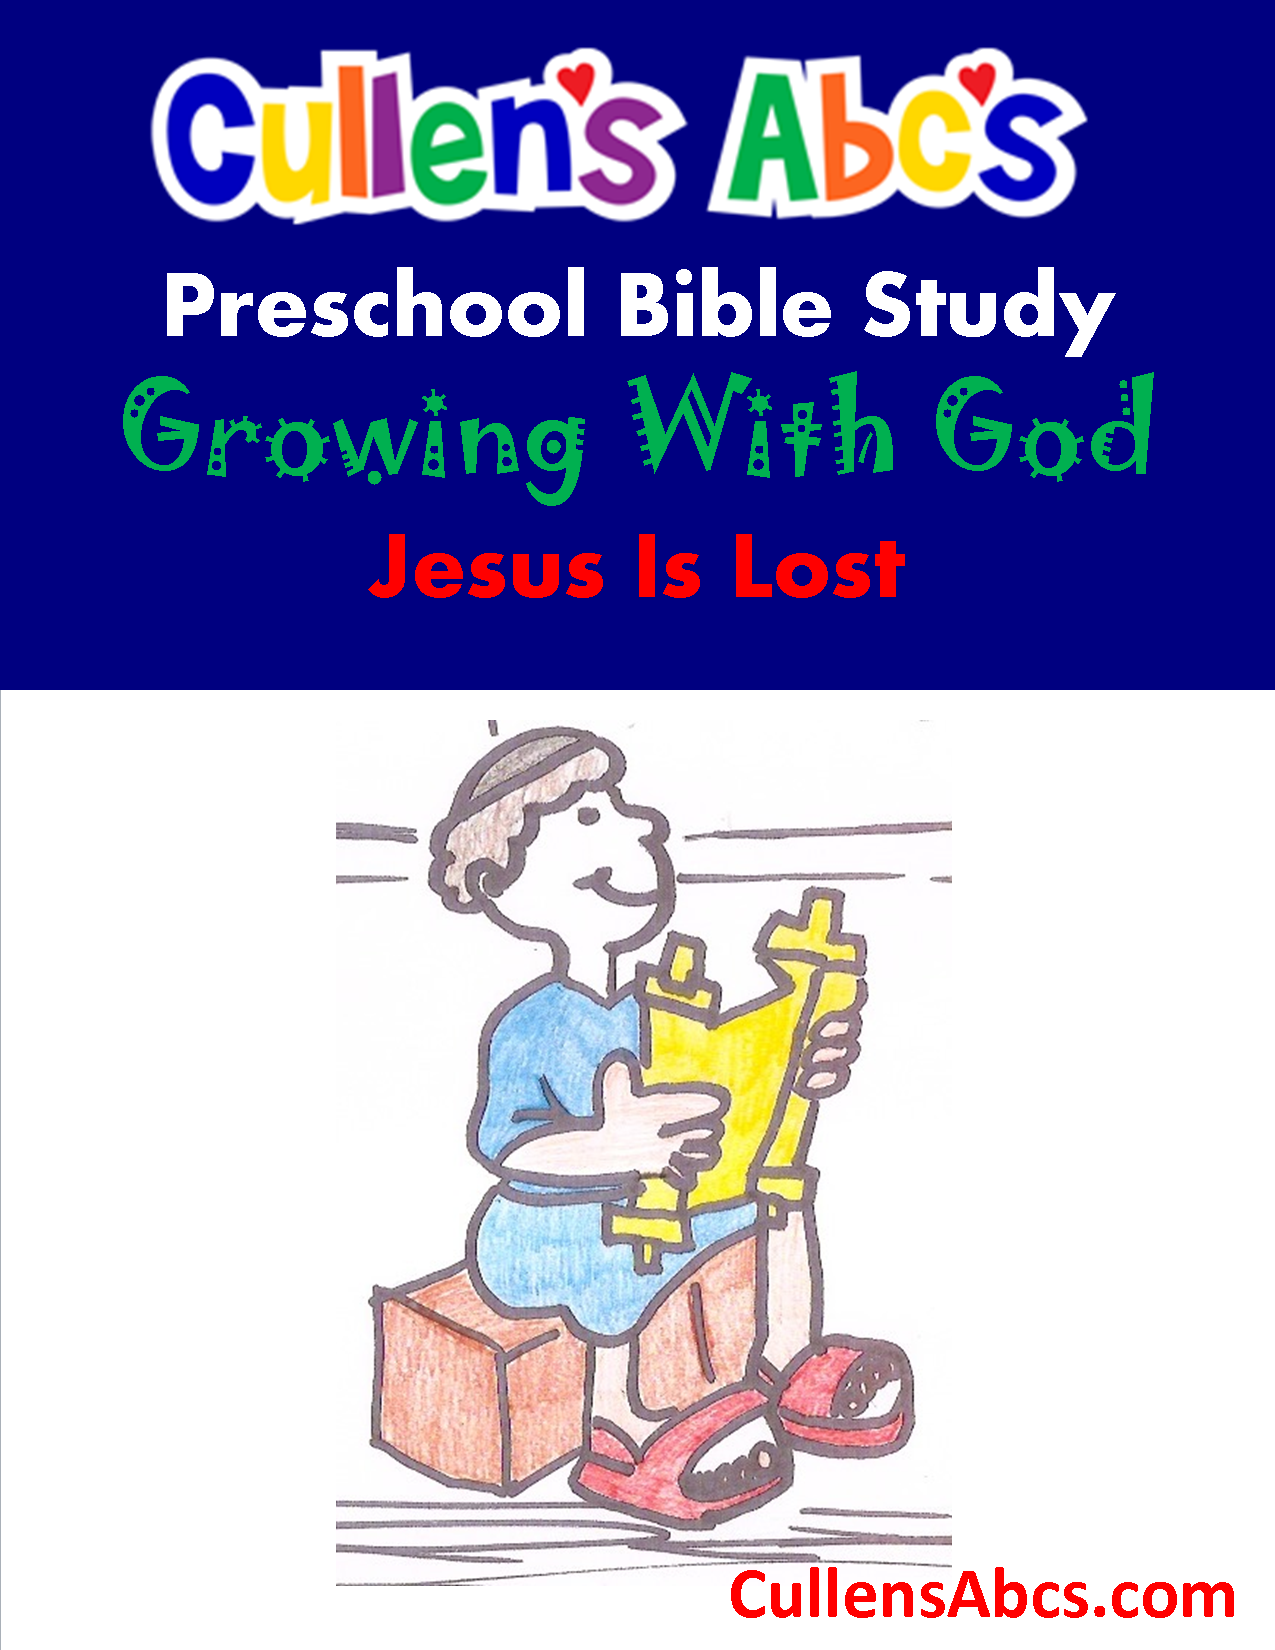 Cullen S Abc S Offers Preschool Bible Study Called